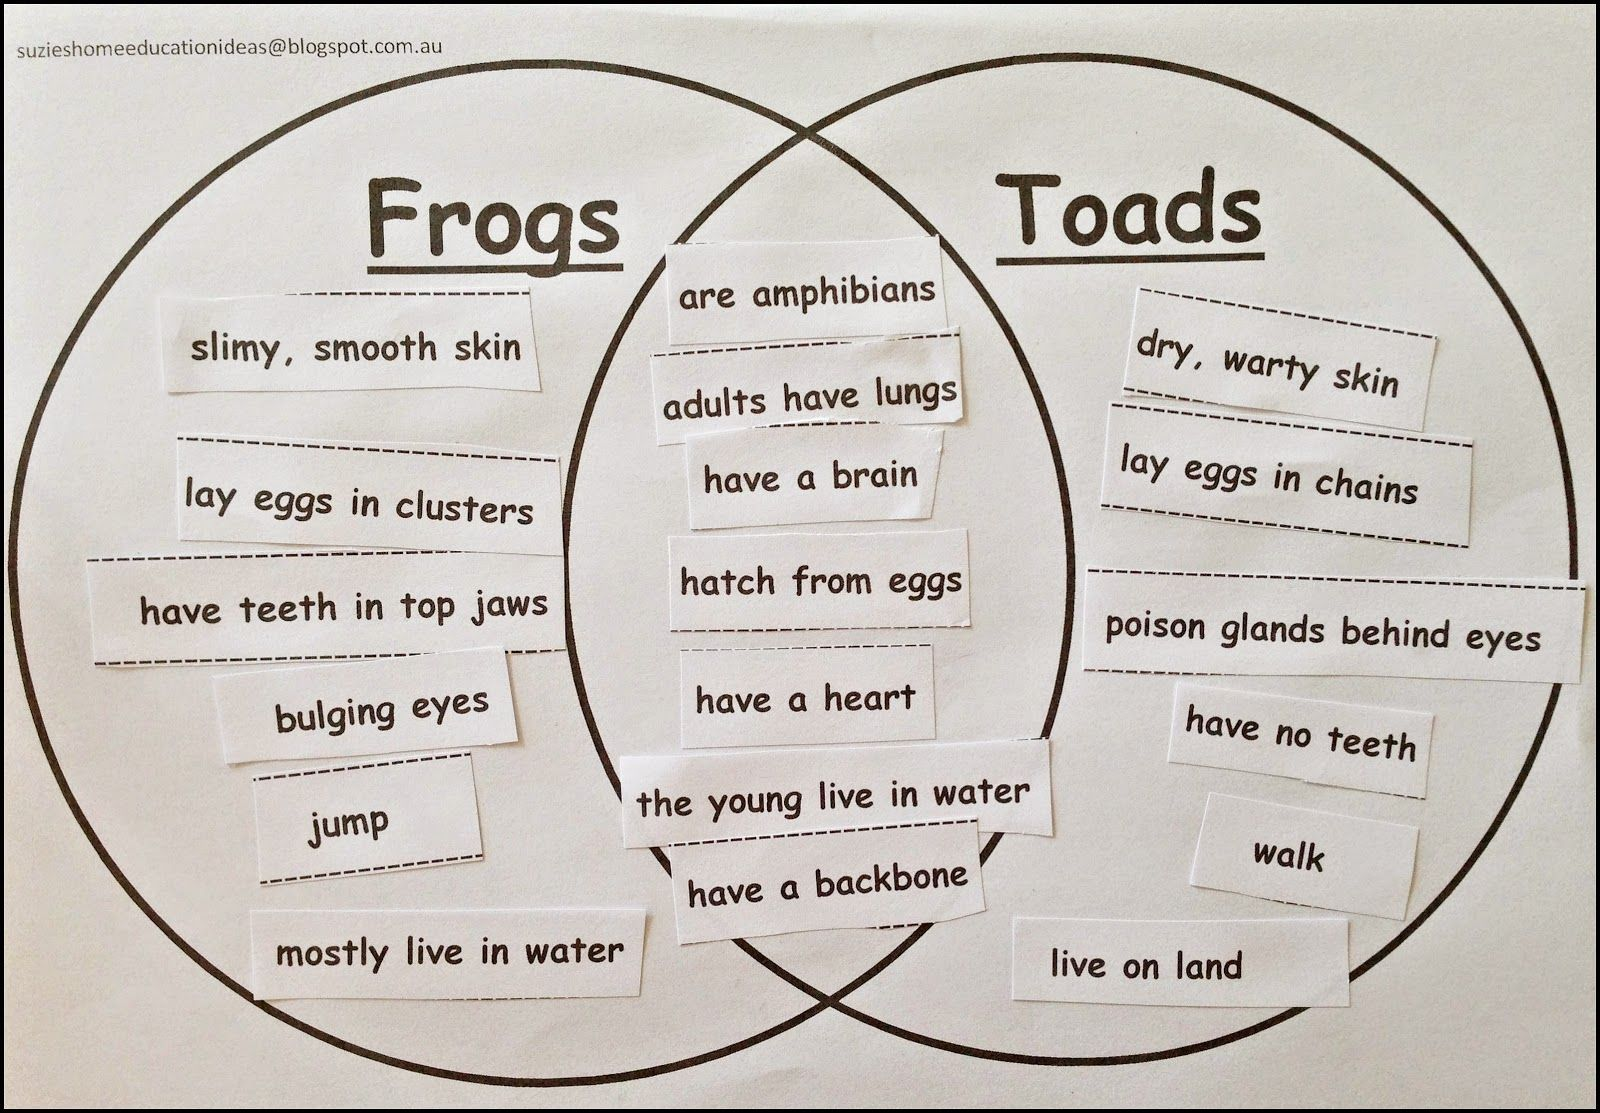 frog and toad venn diagram [ 1600 x 1113 Pixel ]